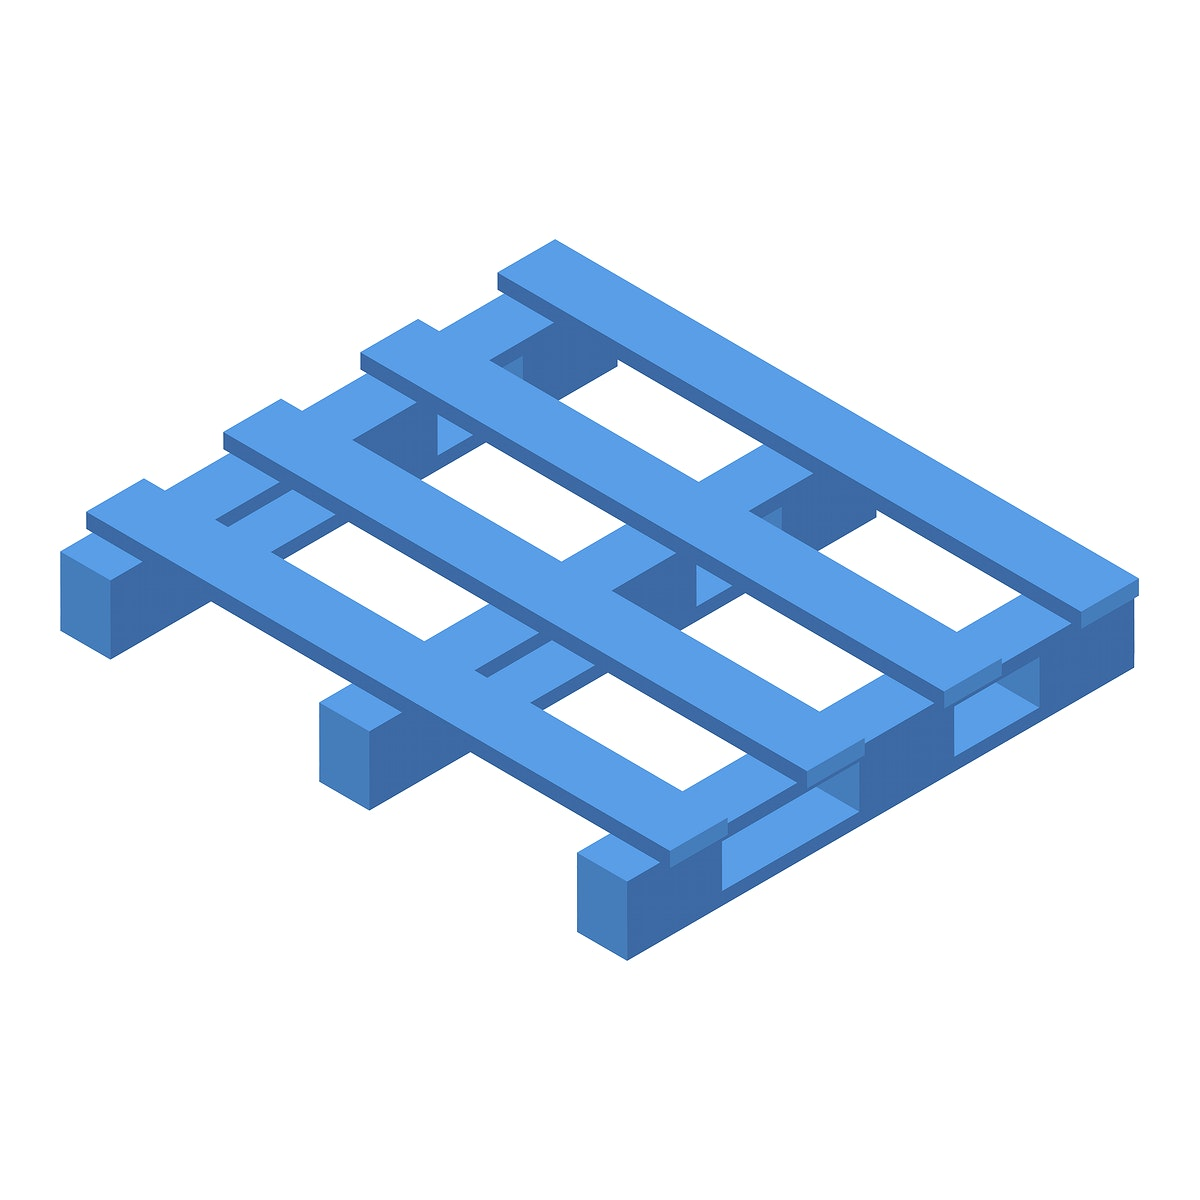 Cargo pallet isolated on background